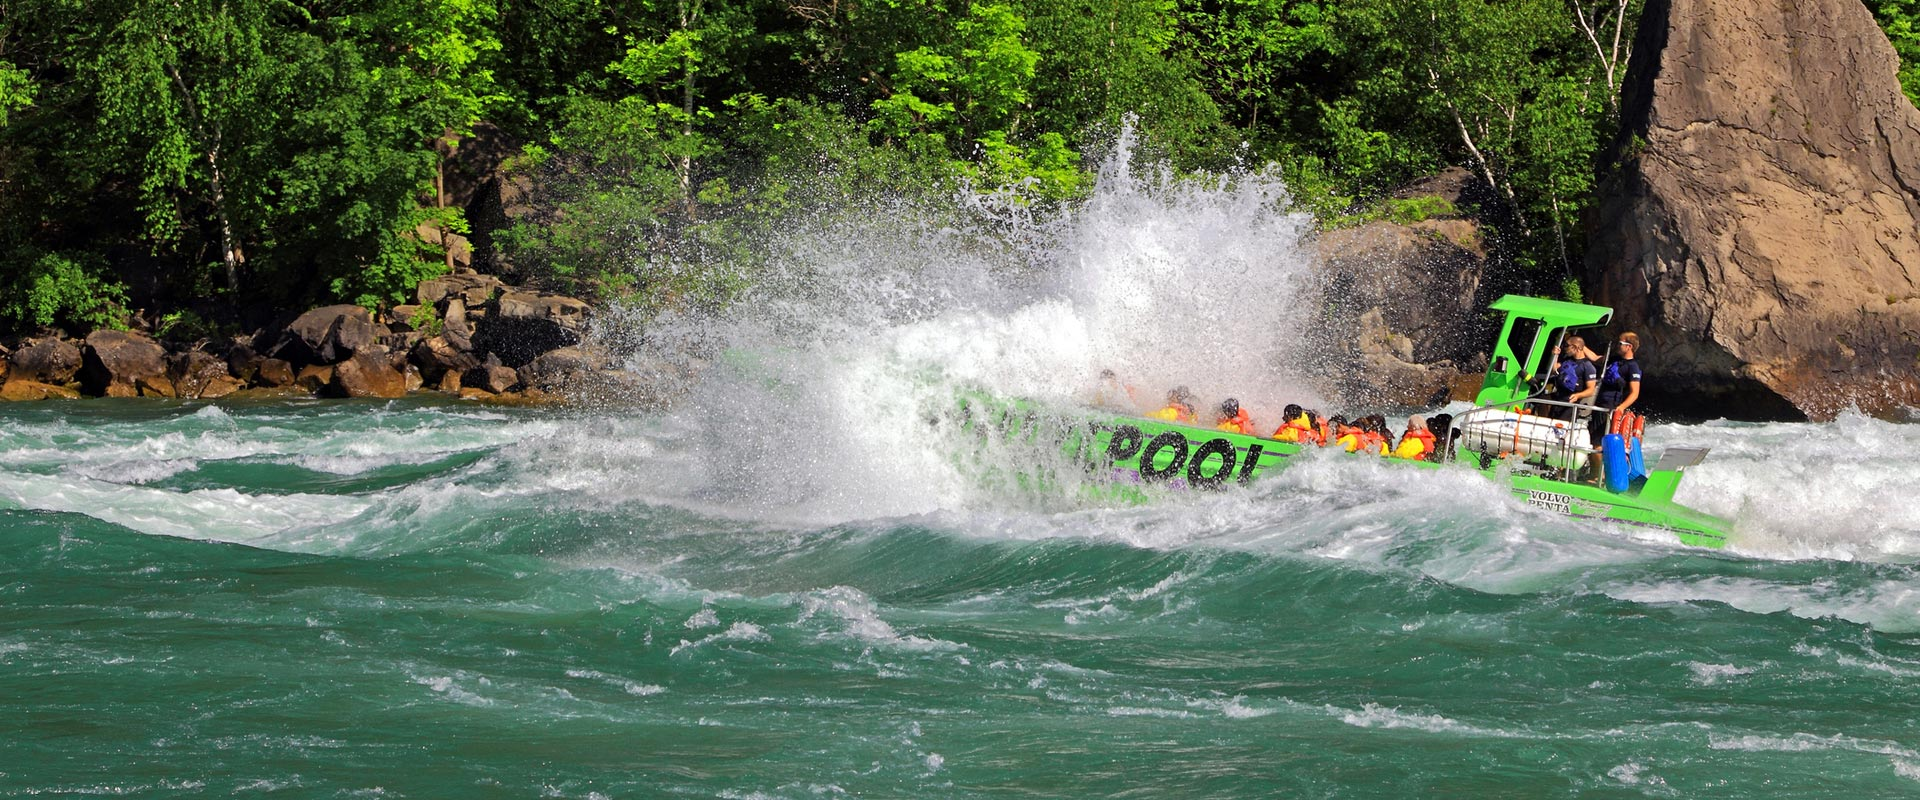 Take a Jet Boat Tour in Niagara Falls Canada